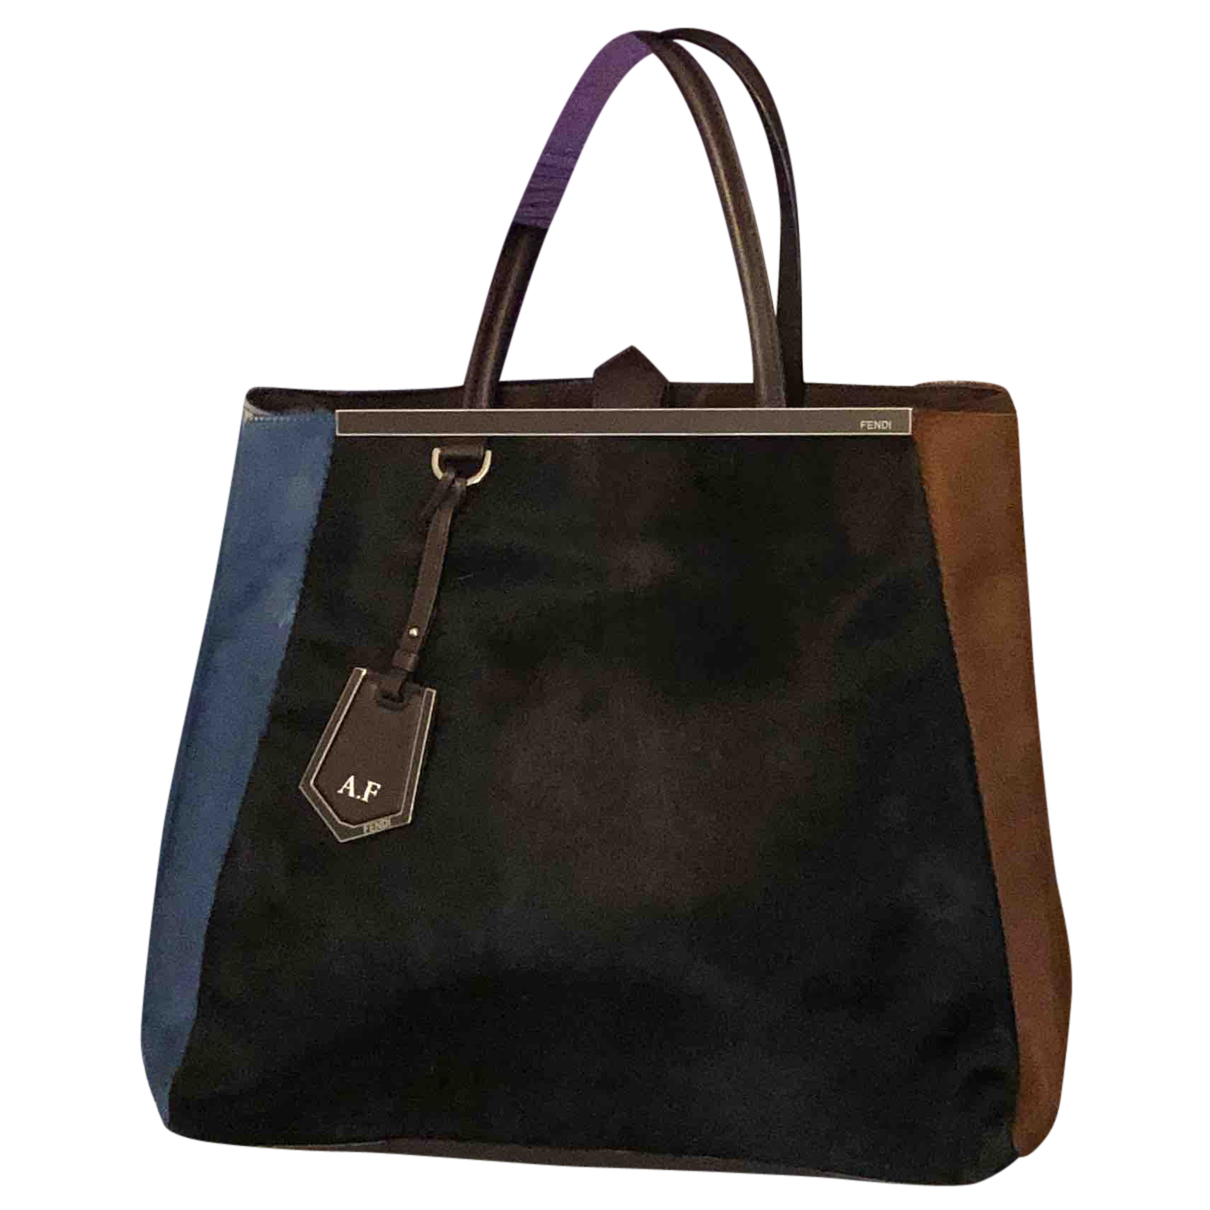 Fendi 2Jours Multicolour Pony-style calfskin handbag for Women N